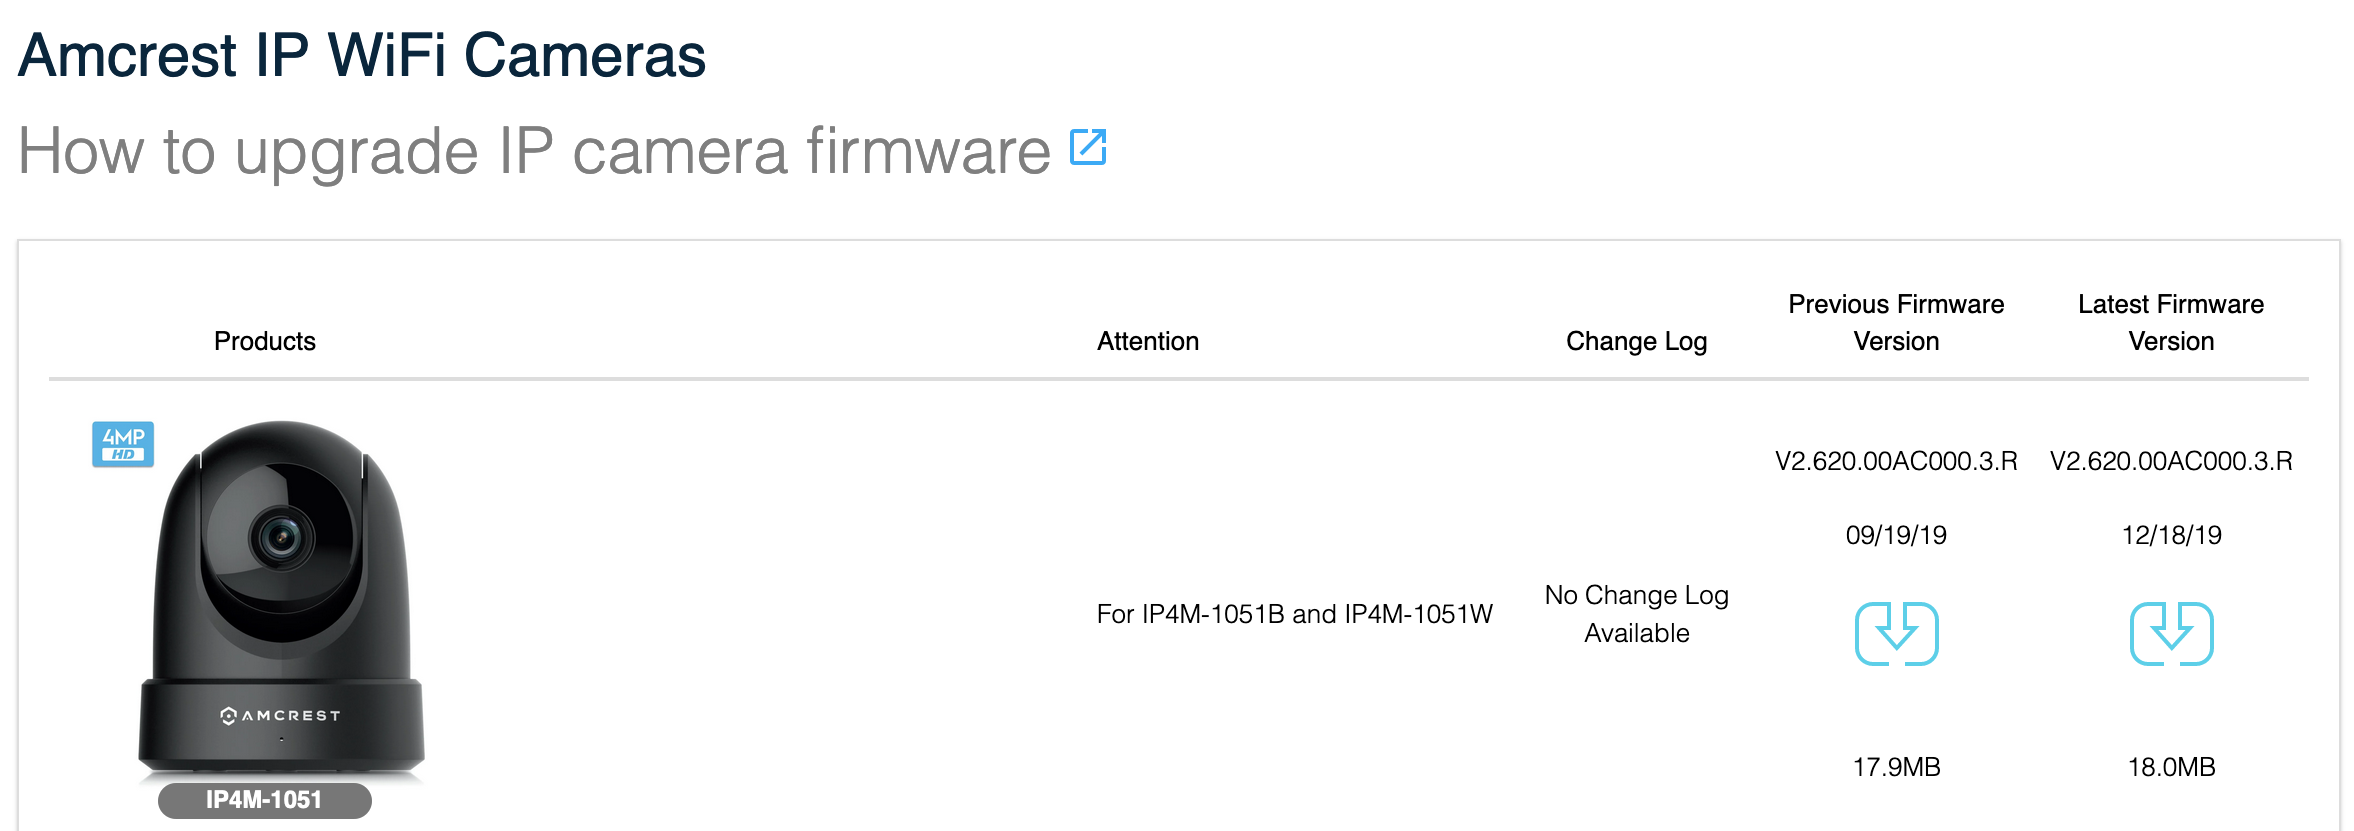 Screenshot showing the Amcrest Firmware page